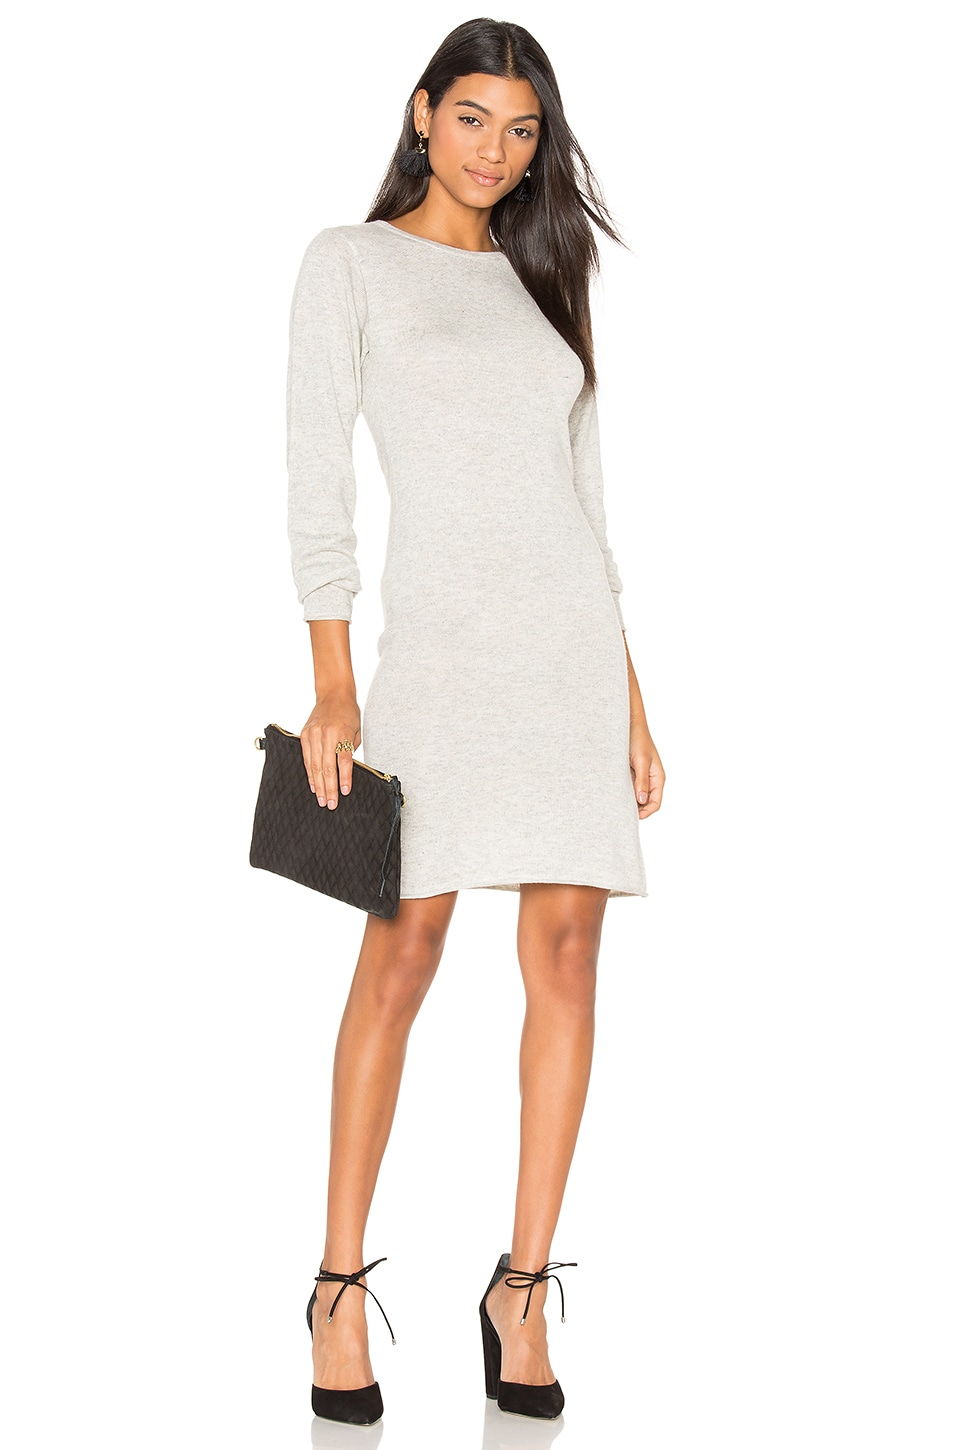 Sweater Dress by Callahan